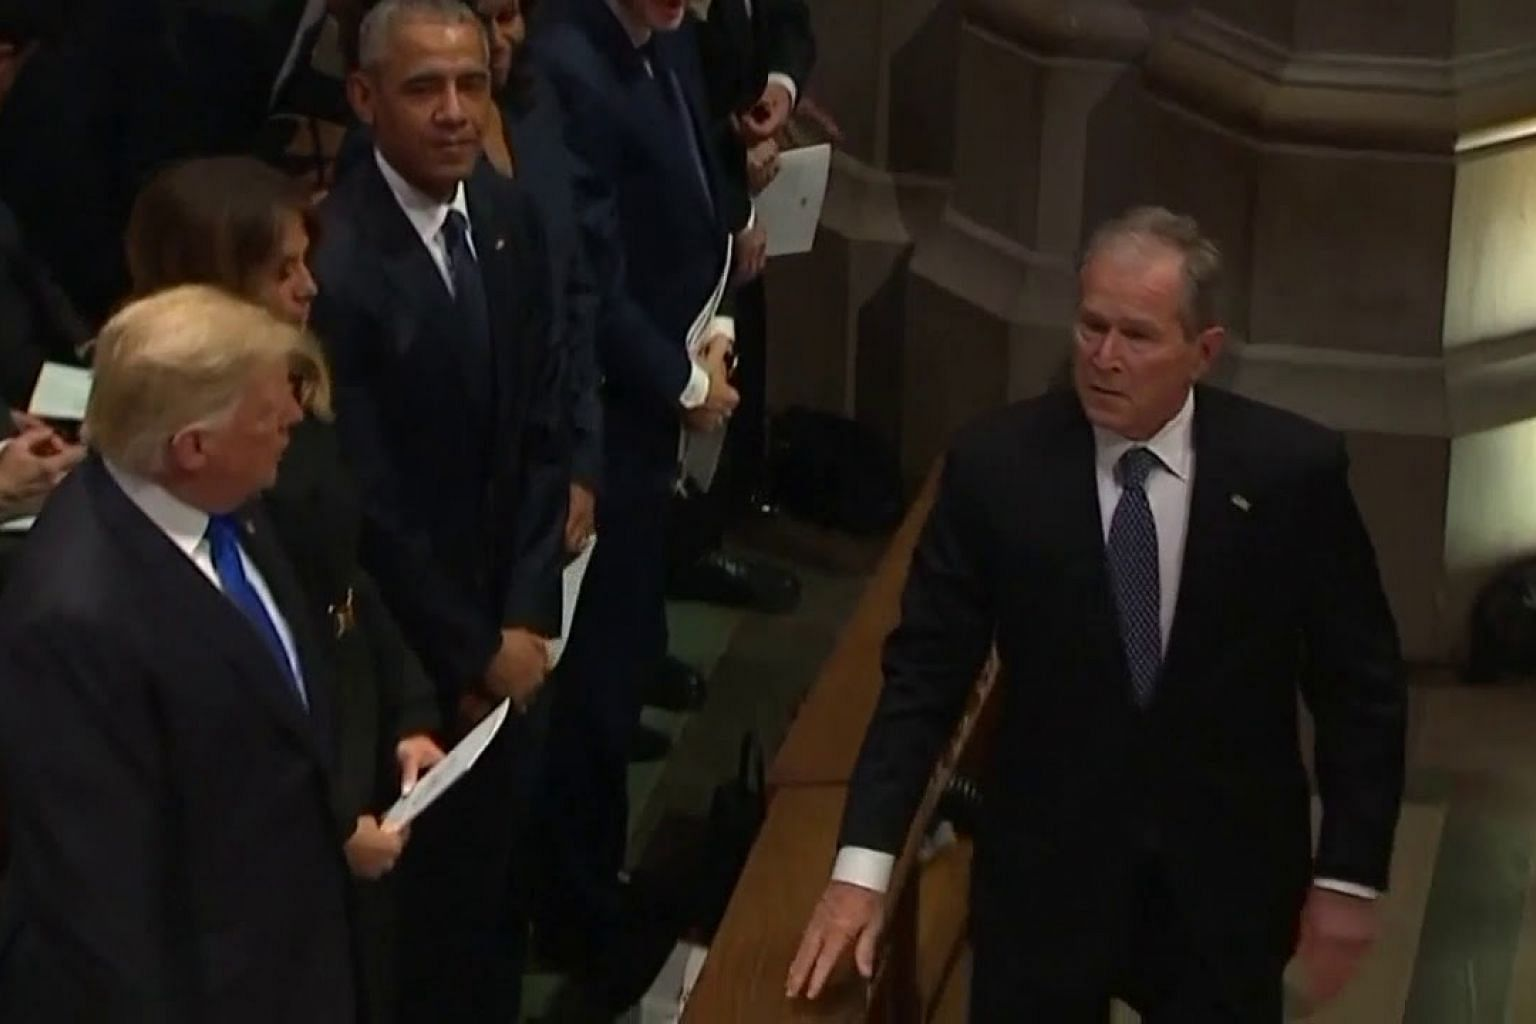 George W. Bush slips Michelle Obama another treat